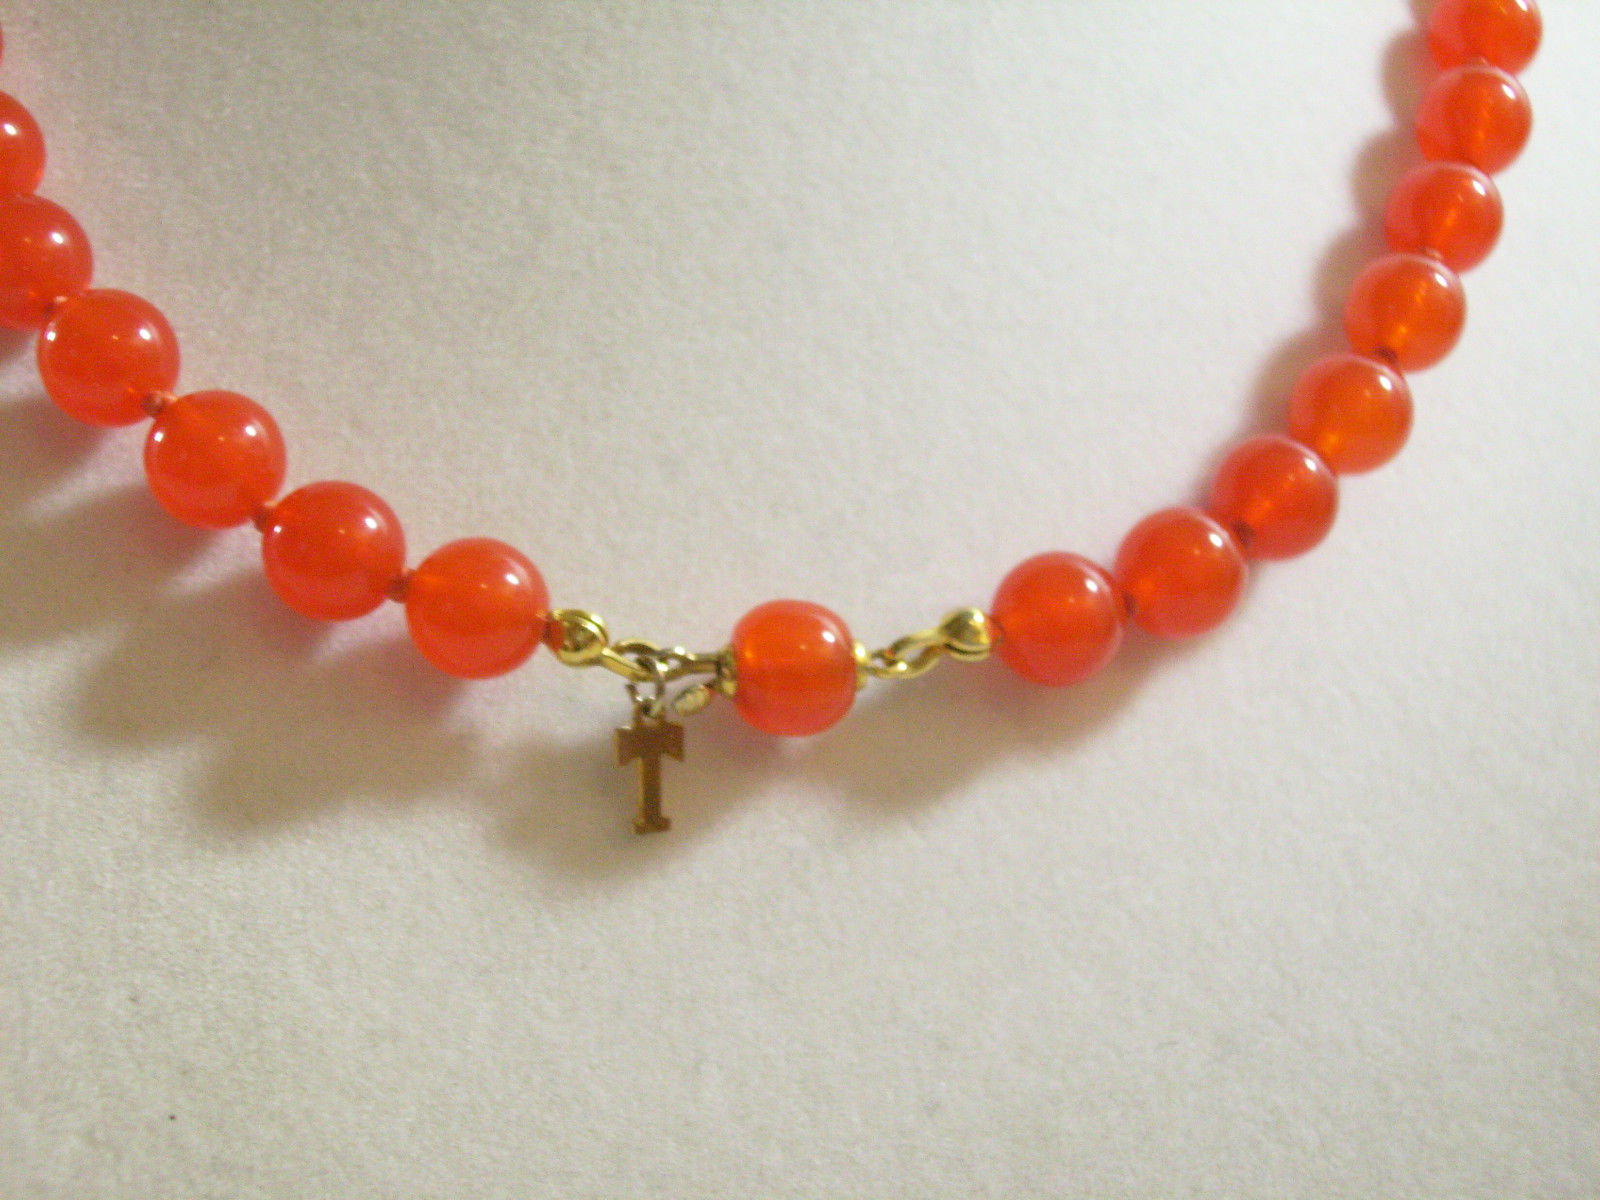 TRIFARI CORAL Color Beads Choker Necklace Hand Knotted Strand Orange Vintage  image 6